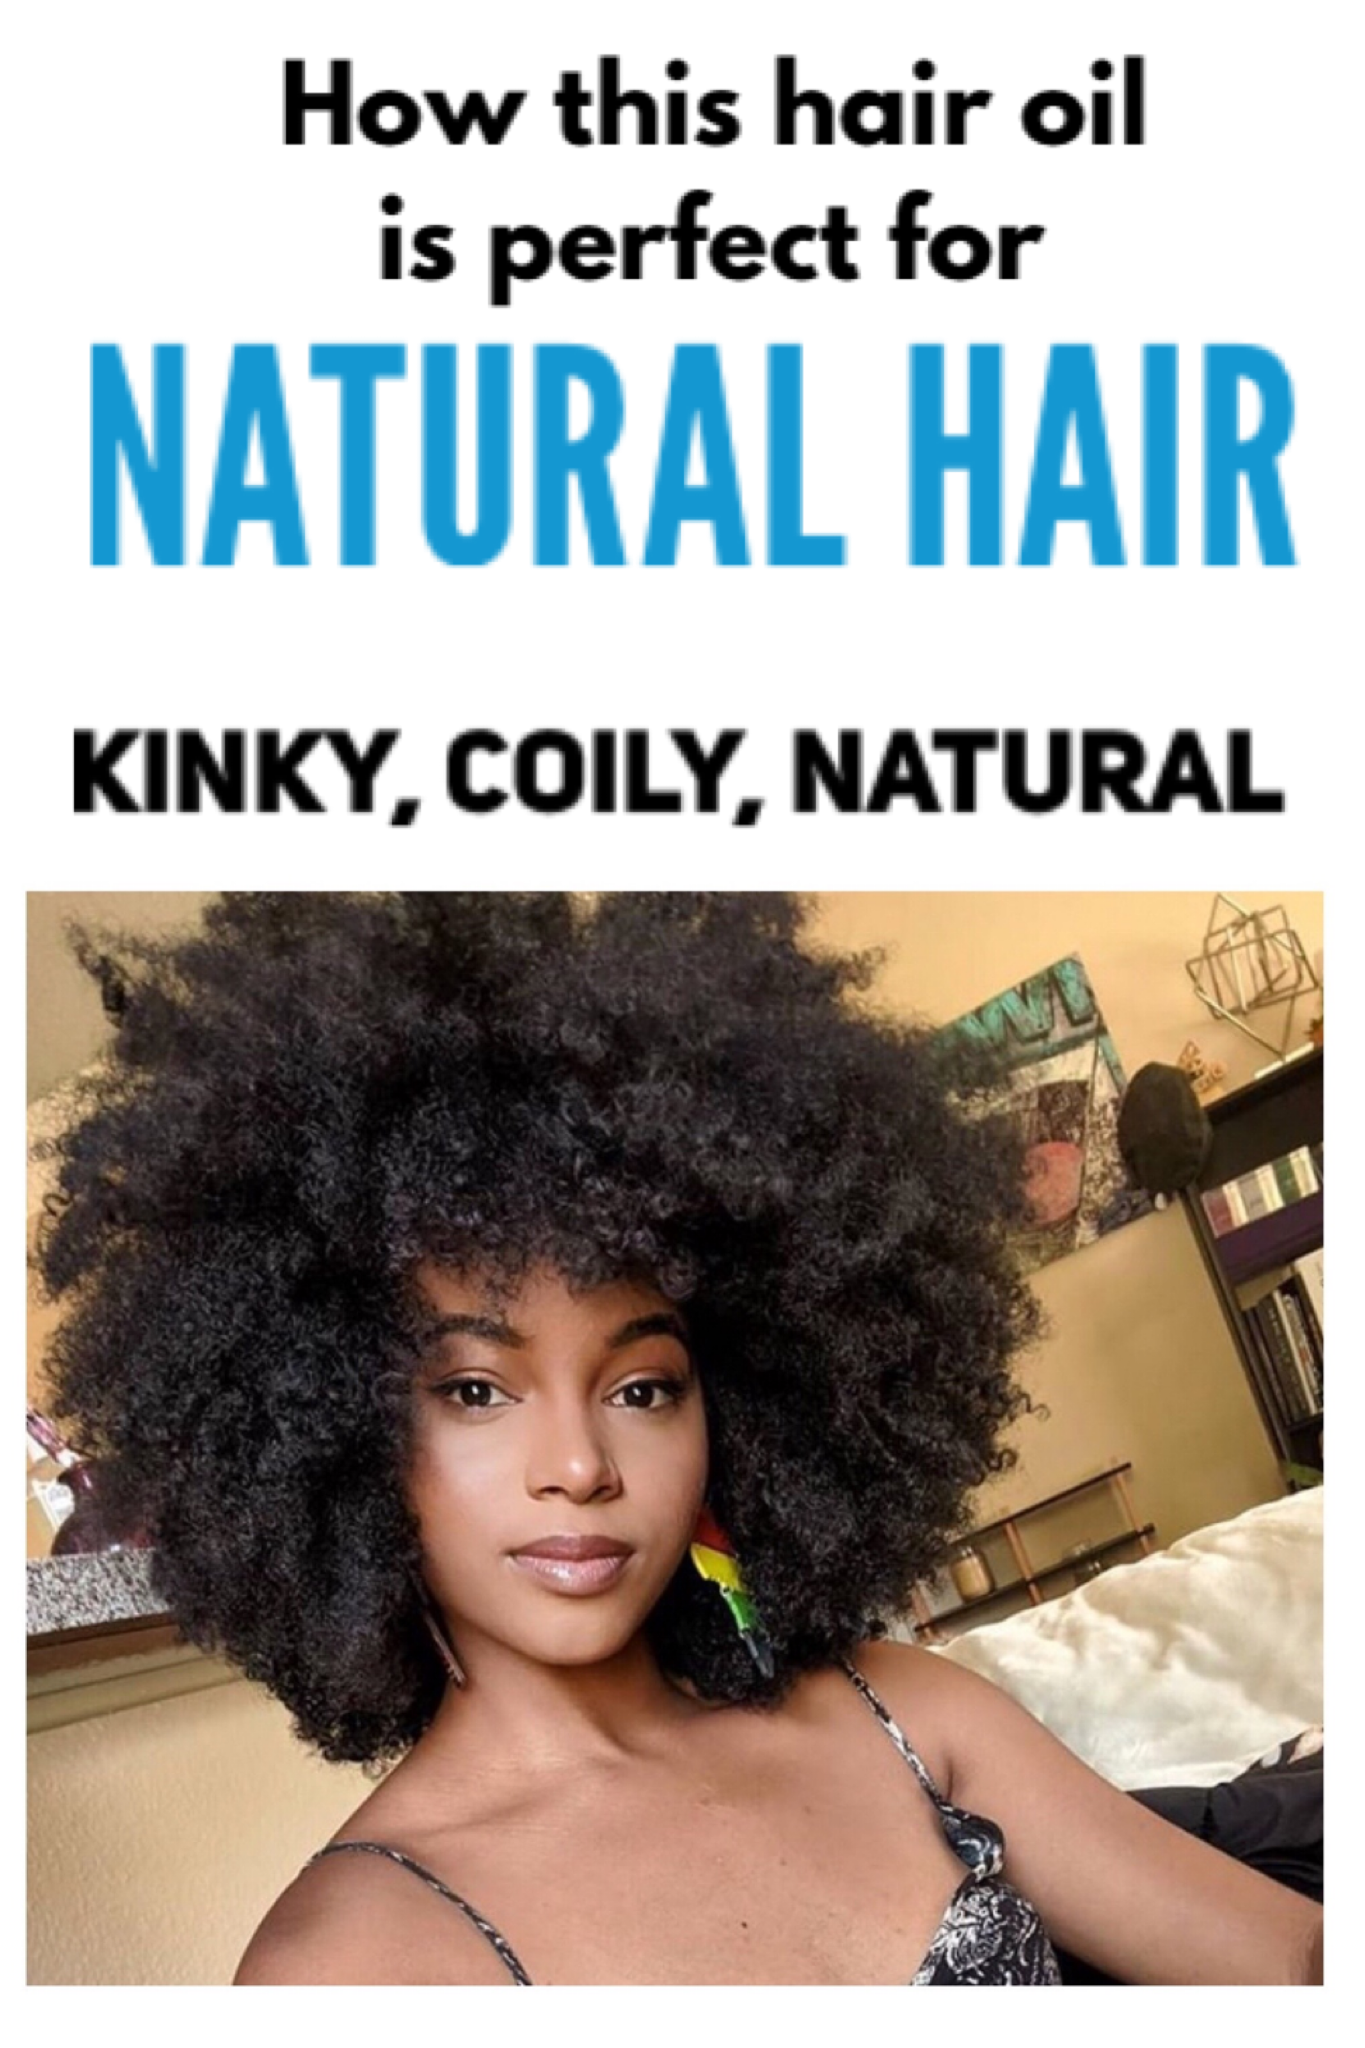 Whether you have 2,3,4 (a,b,c) hair type, this all natural oil is infused with black seeds (you can see the black seeds in each bottle!) it will leave you with thicker, healthier, longer hair. Read more @ olivaproducts.com  #kinkycurlyhair #naturalhair #4chair #4bhair #hairtypes #haircare #4ahair  #dreadlocks #braids #hairoil #hairgrowth #hairgrowthoil #curlyhair #longhair #frizzyhairsolution